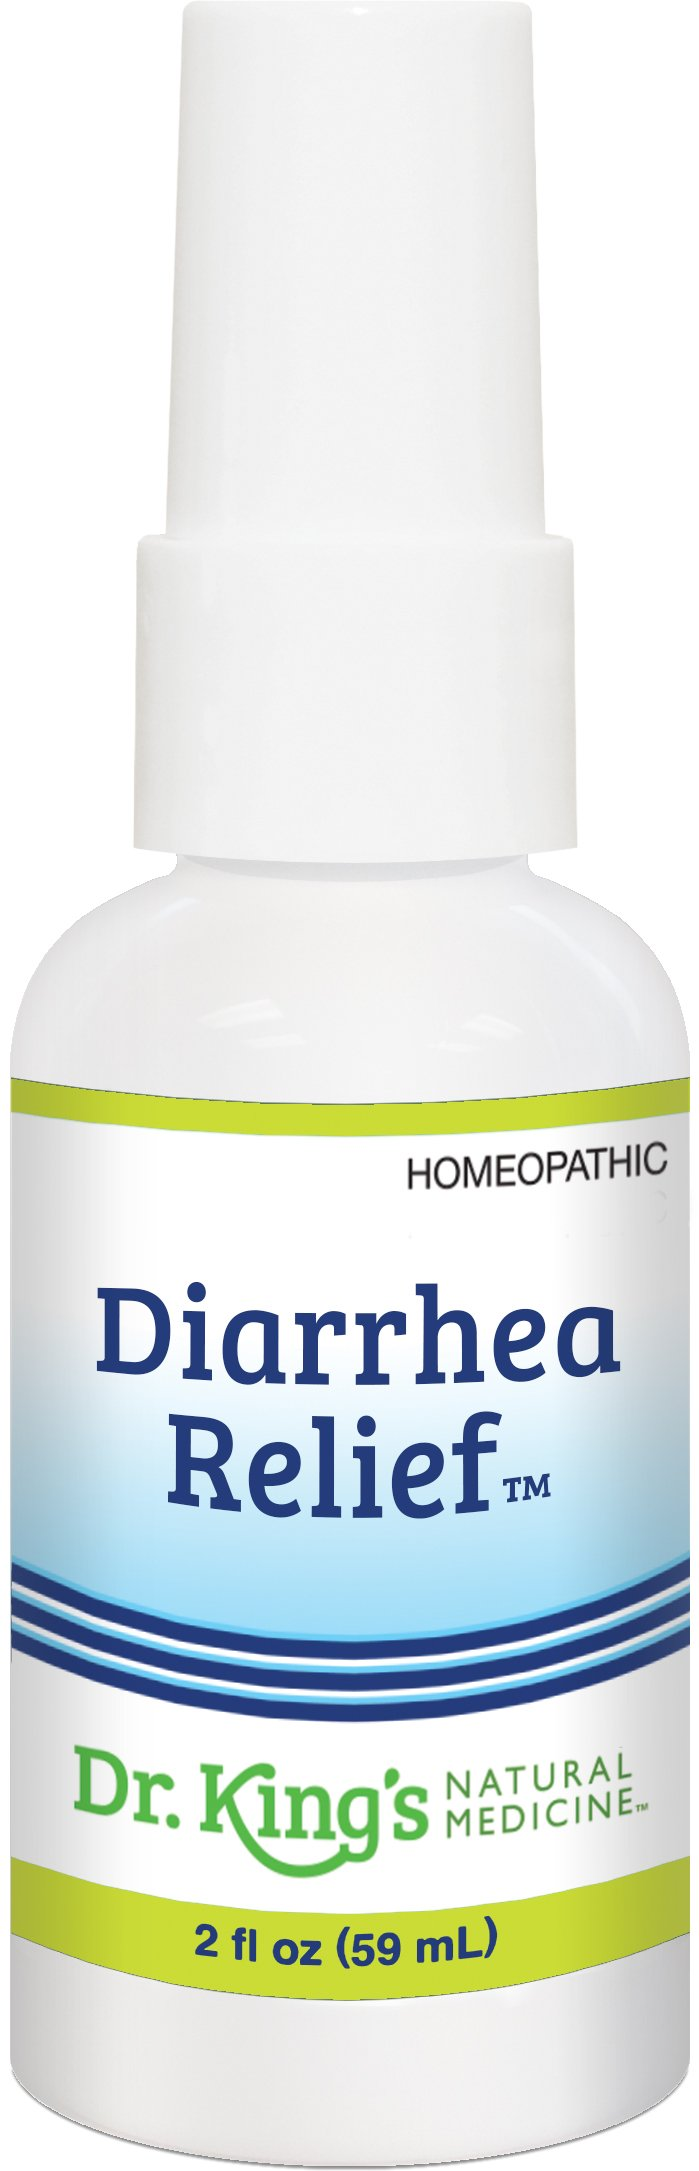 Dr. King's Natural Medicine Diarrhea Relief, 2 Fluid Ounce